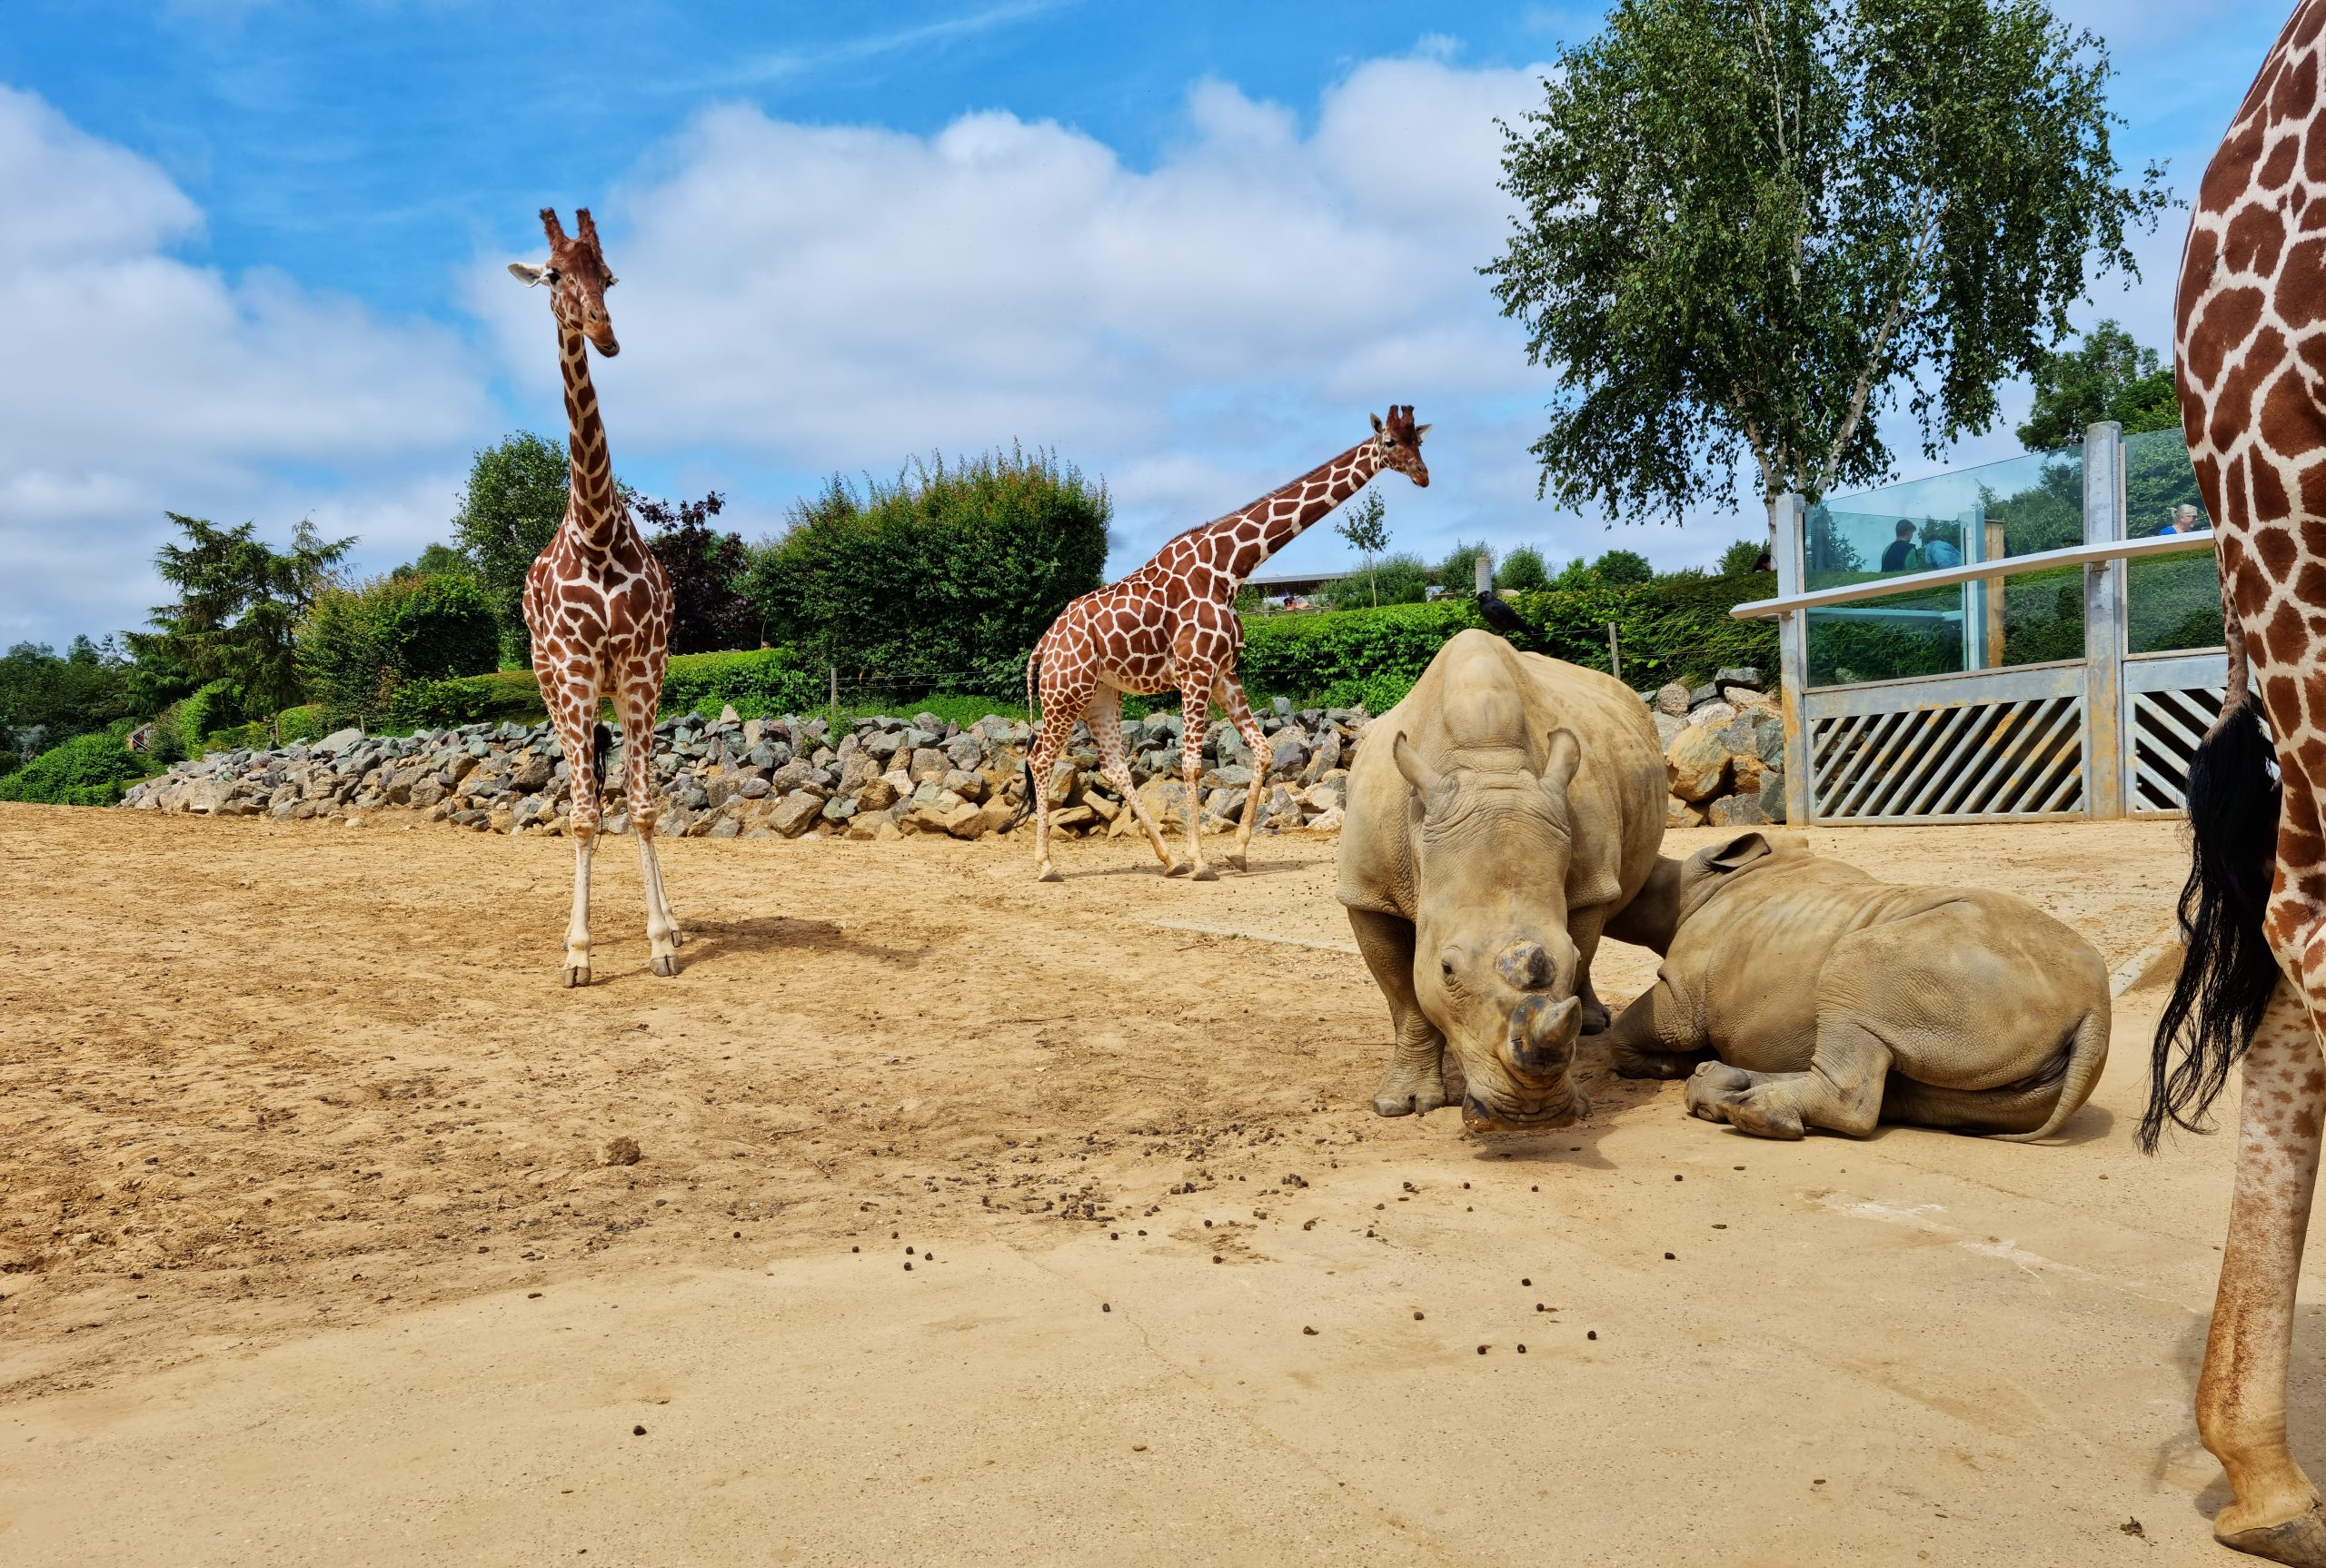 Rhinos and giraffes in paddock at Colchester Zoo extra-ordinary experience day.